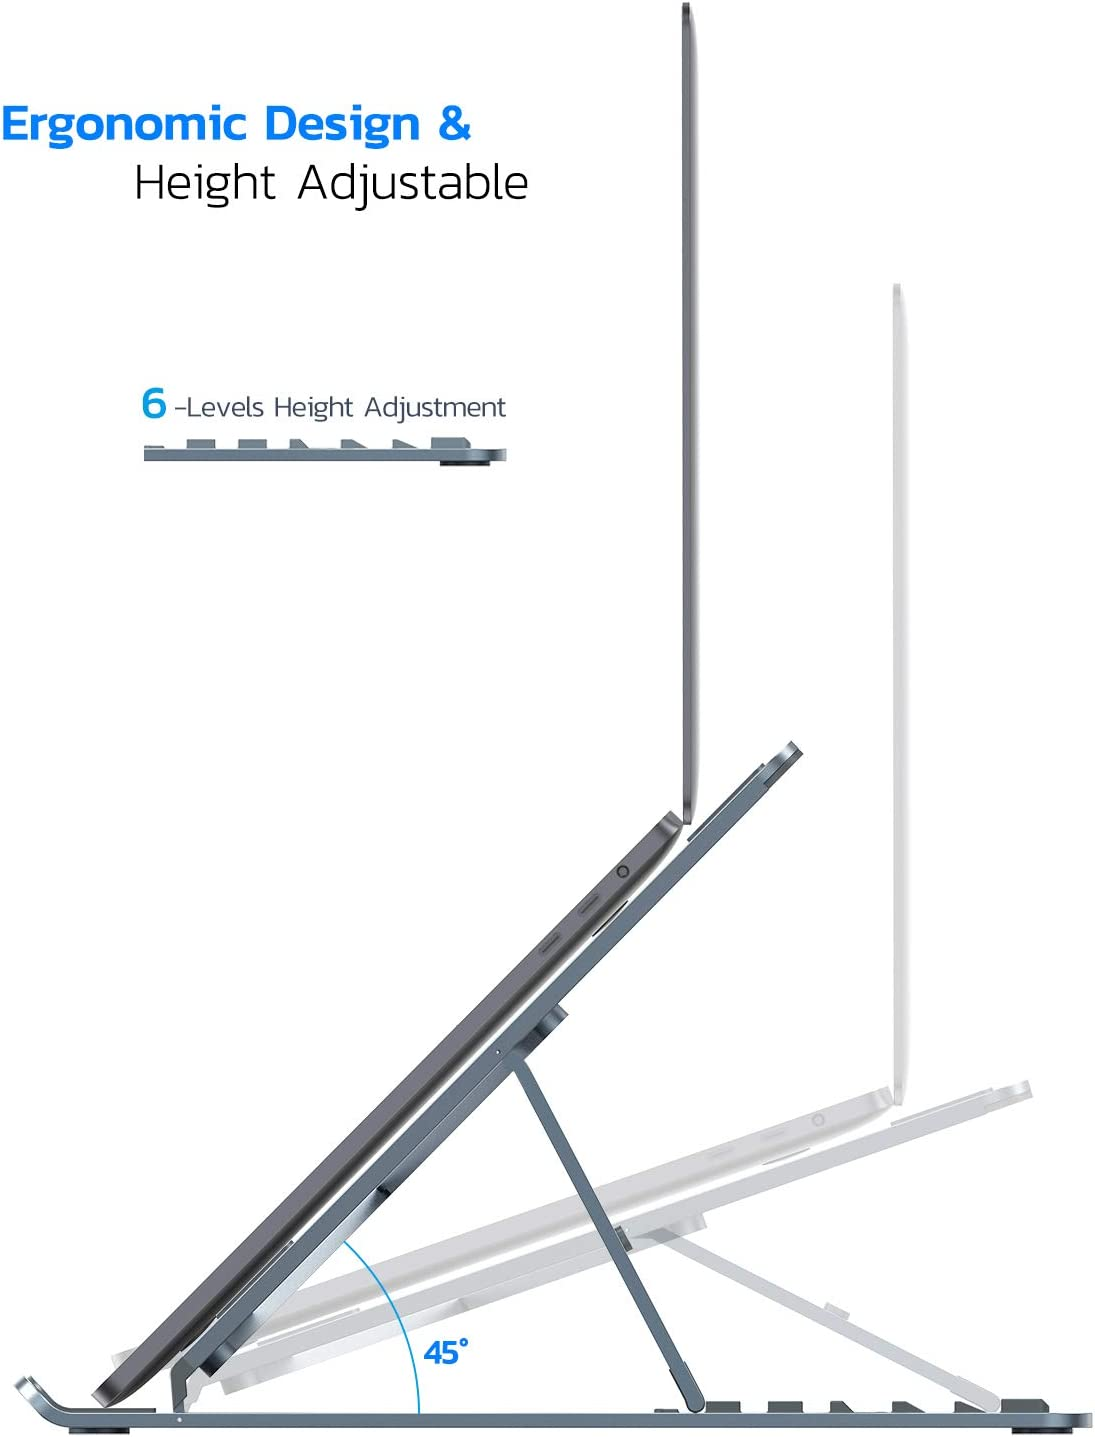 Nulaxy Laptop Stand Space Grey Aluminum Laptop Riser with 6 Levels Height Adjustment Fully Foldable Portable Computer Laptop Mount Supports up to 22lbs